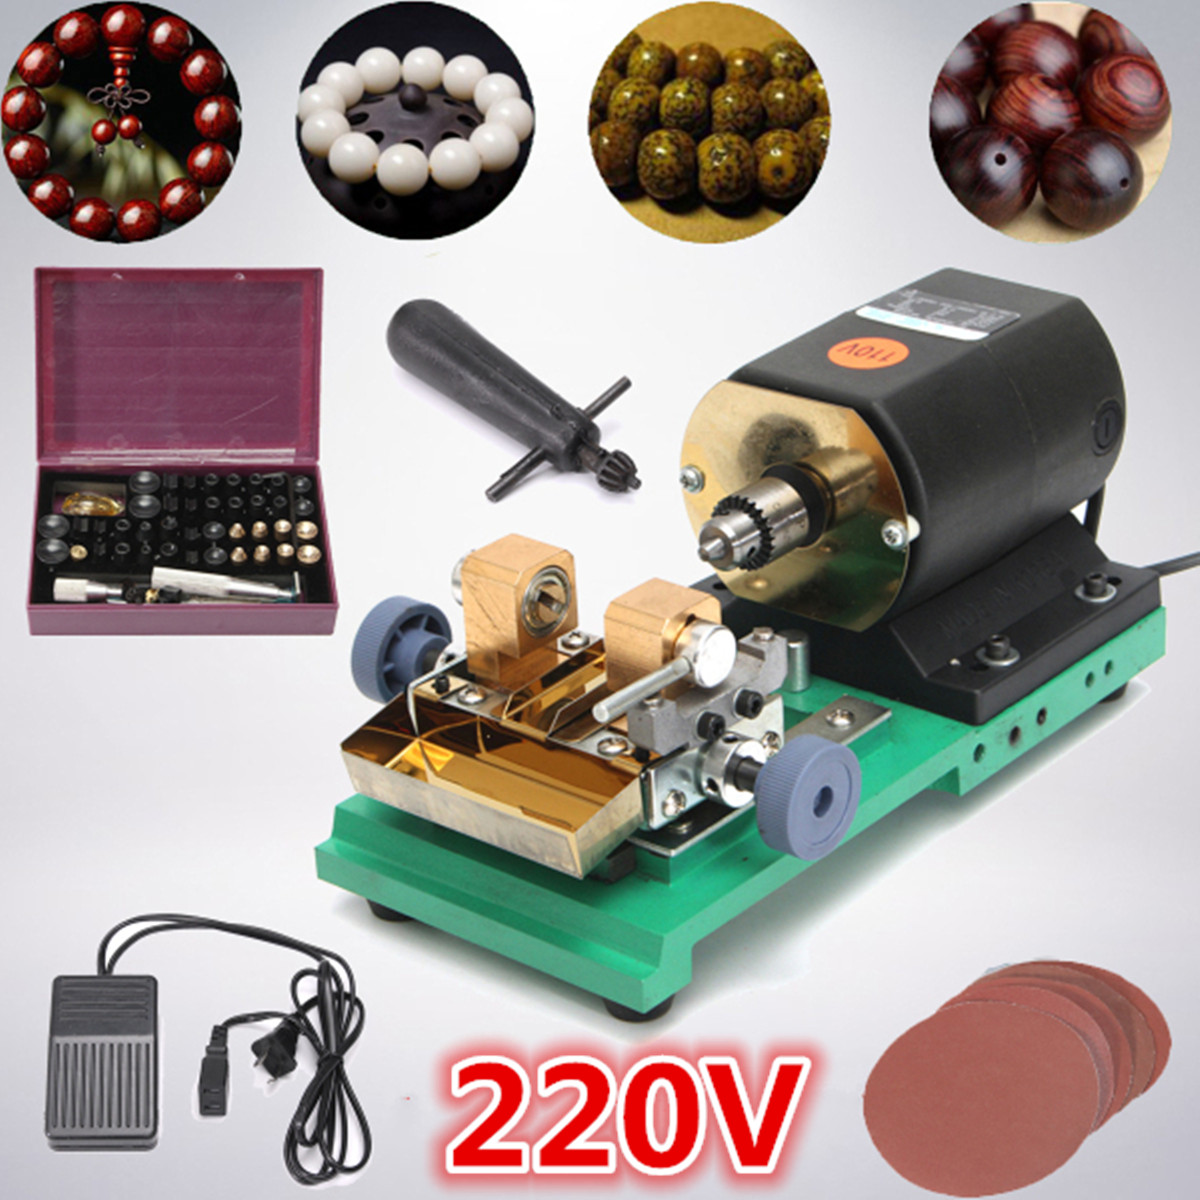 380W 220V Pearl Drilling Holing Machine Driller Full Set Jewelry Jade Driller Tools With Sanding Disc380W 220V Pearl Drilling Holing Machine Driller Full Set Jewelry Jade Driller Tools With Sanding Disc